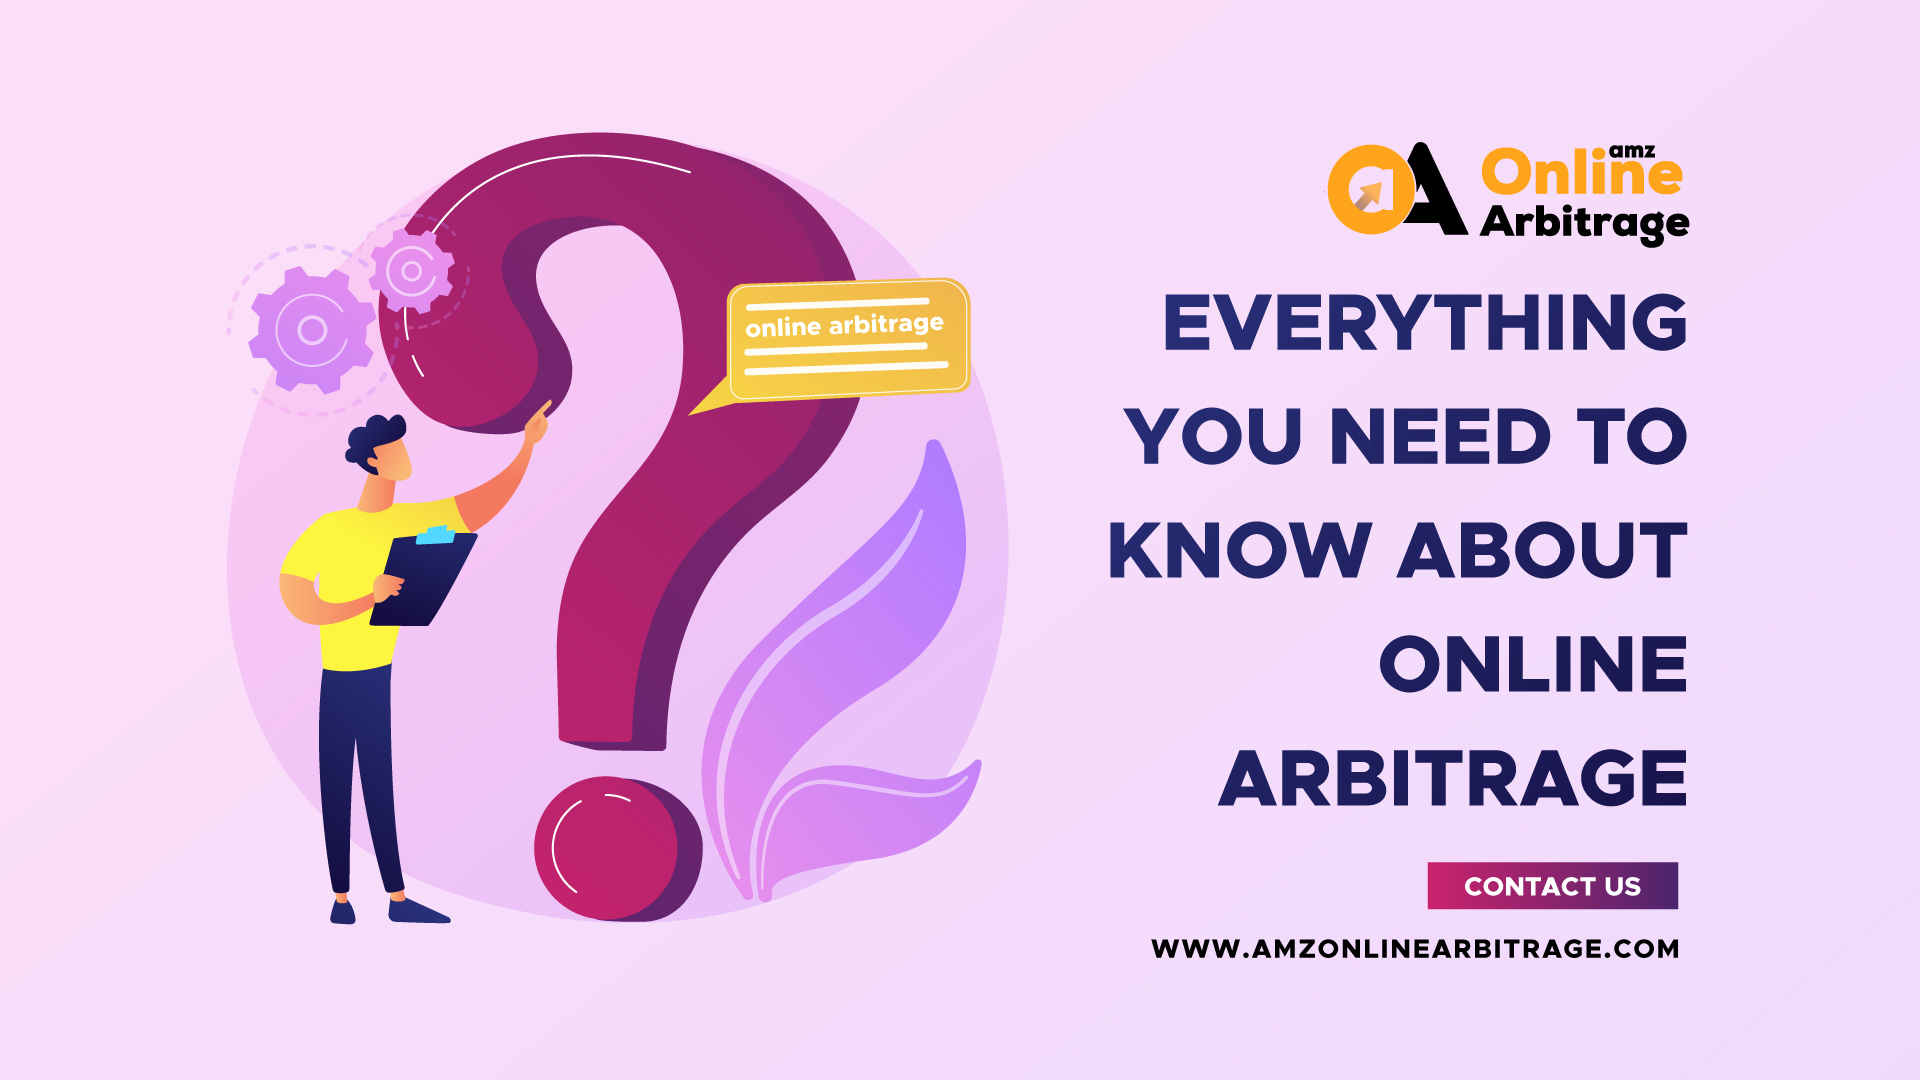 EVERYTHING YOU NEED TO KNOW ABOUT ONLINE ARBITRAGE